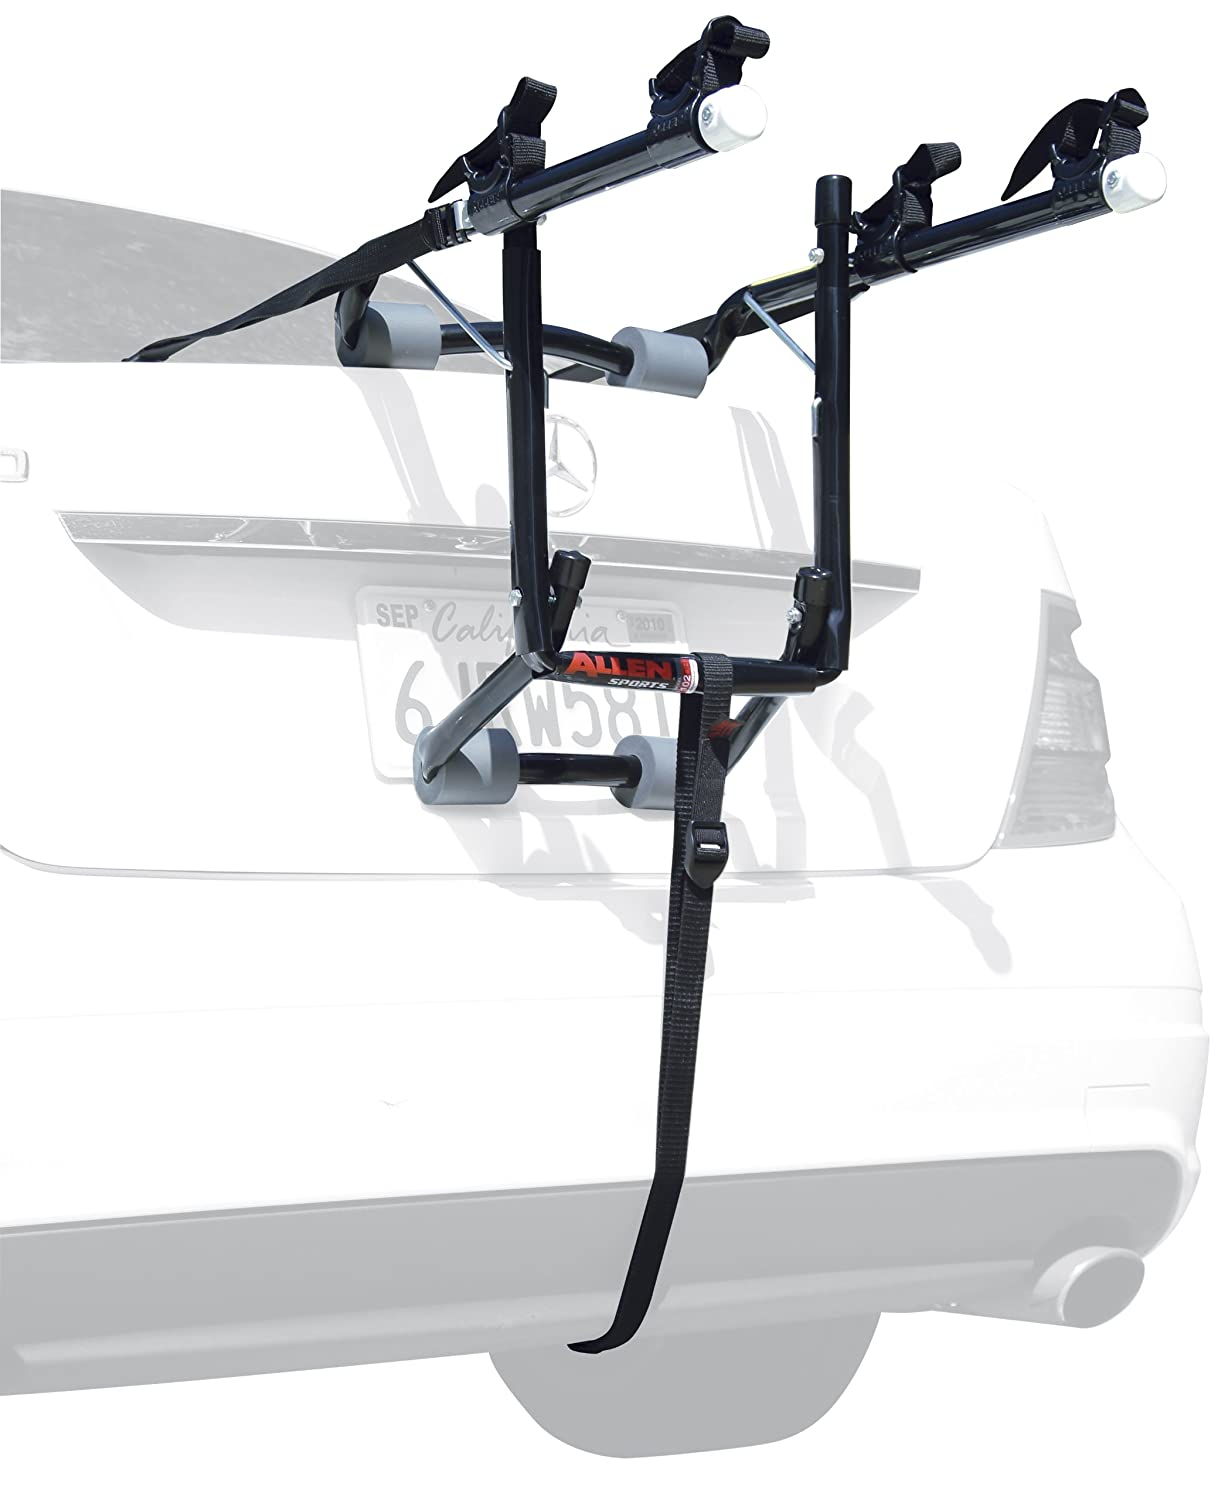 Bikes Under u0024200 Bike Racks For Trucks Walmart